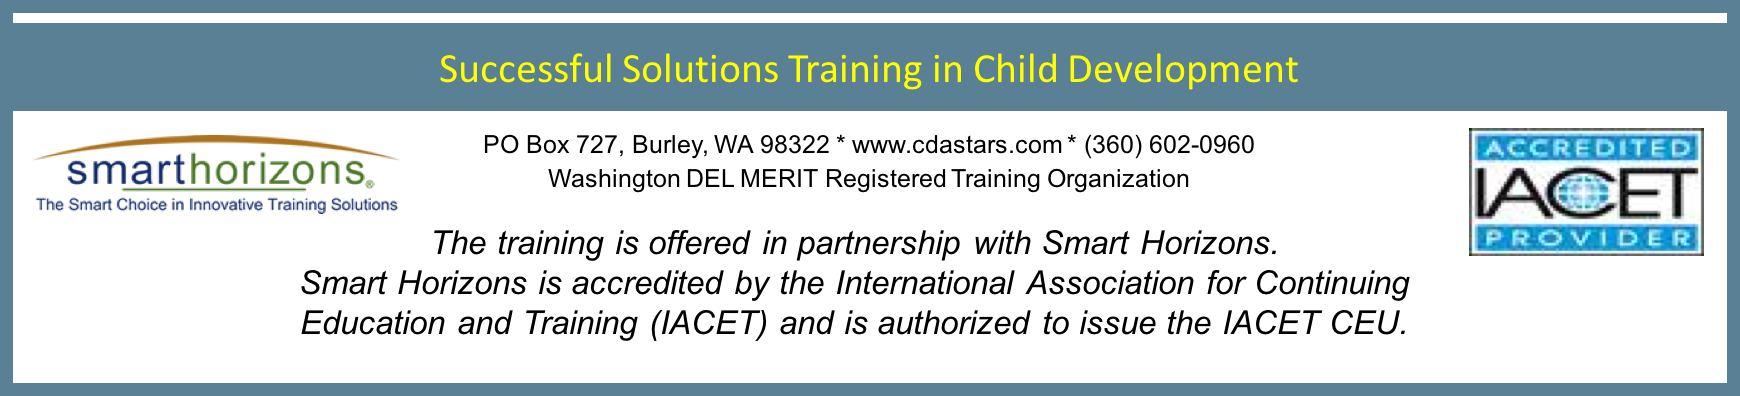 successful solutions training in child development - georgia ...